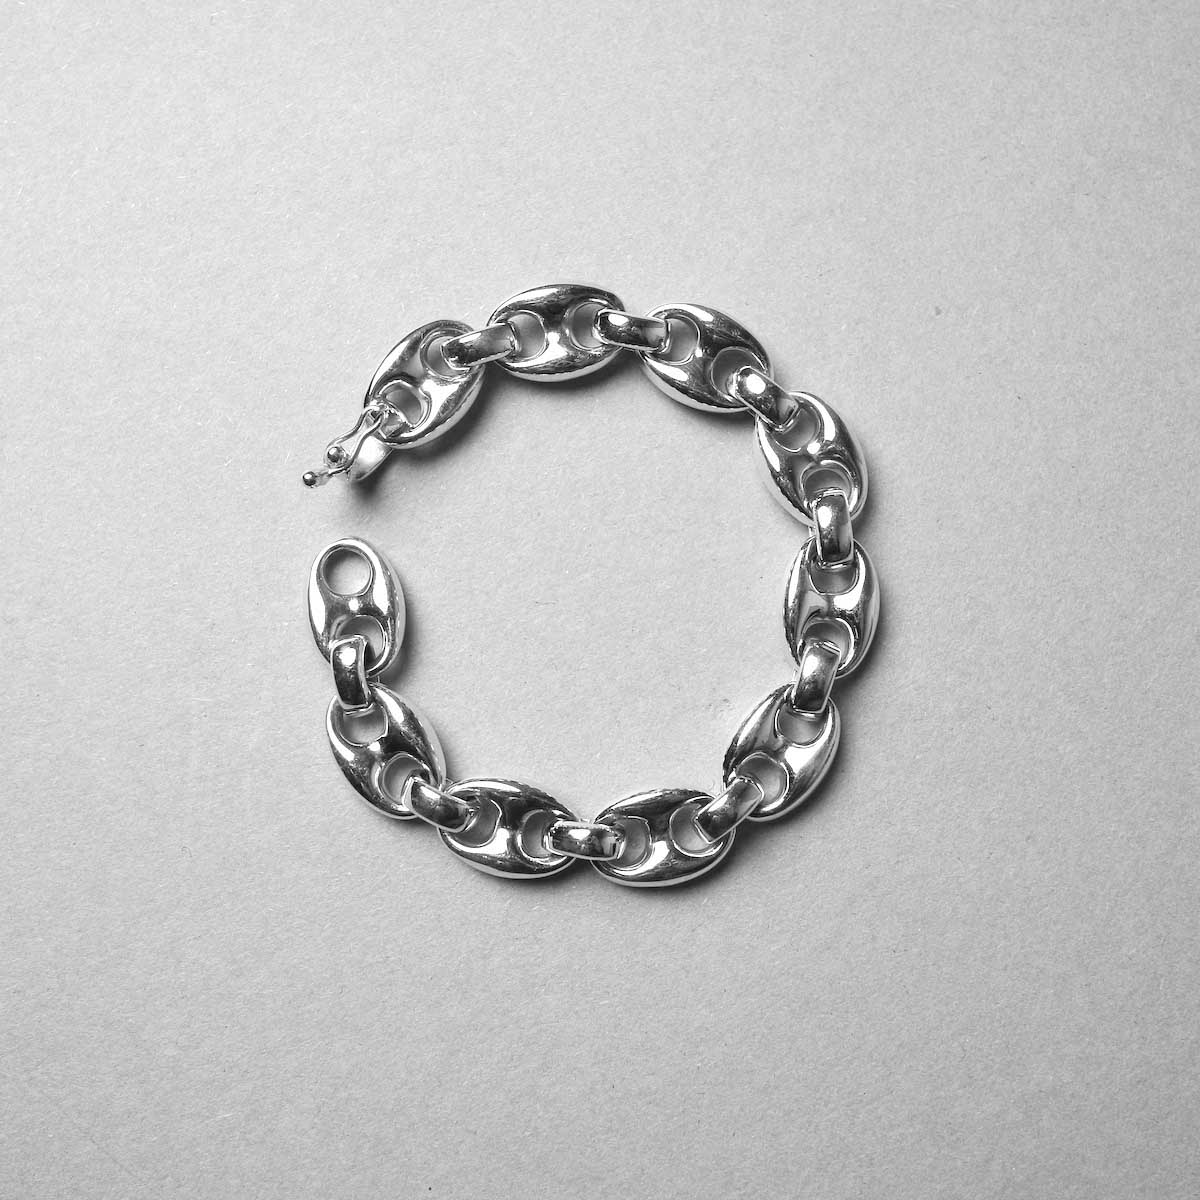 FIFTH SILVER / Special-003 S Silver Chain Bracelet (11mm)